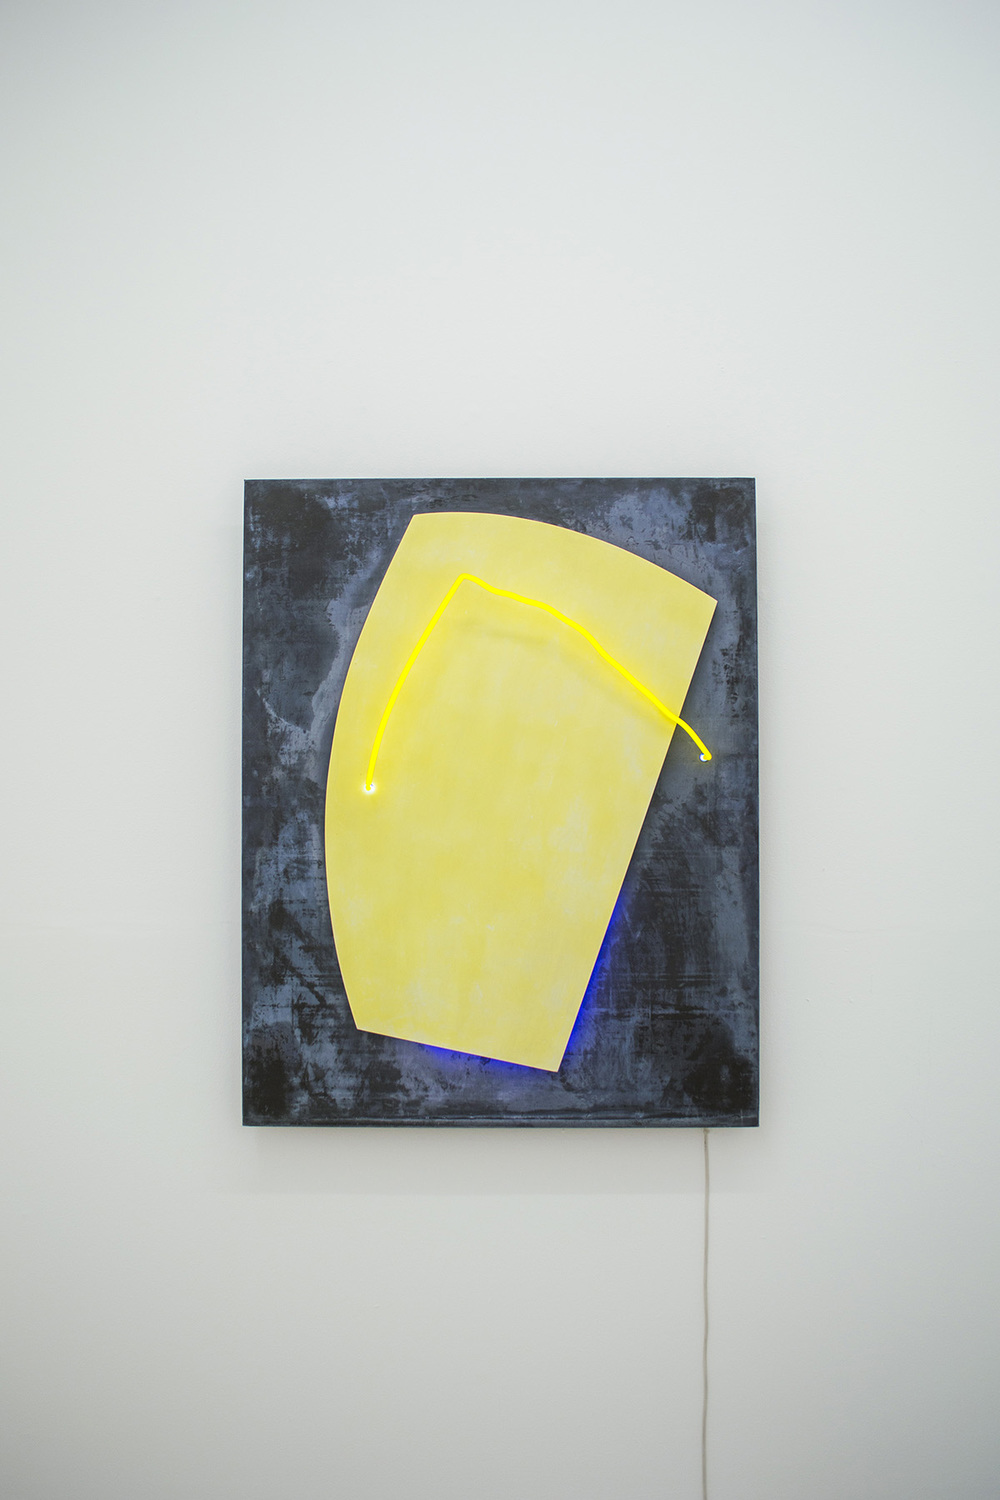 Plumbum Jaune  1988 126 x 100 x 13 cm Neon light, lead, and wood